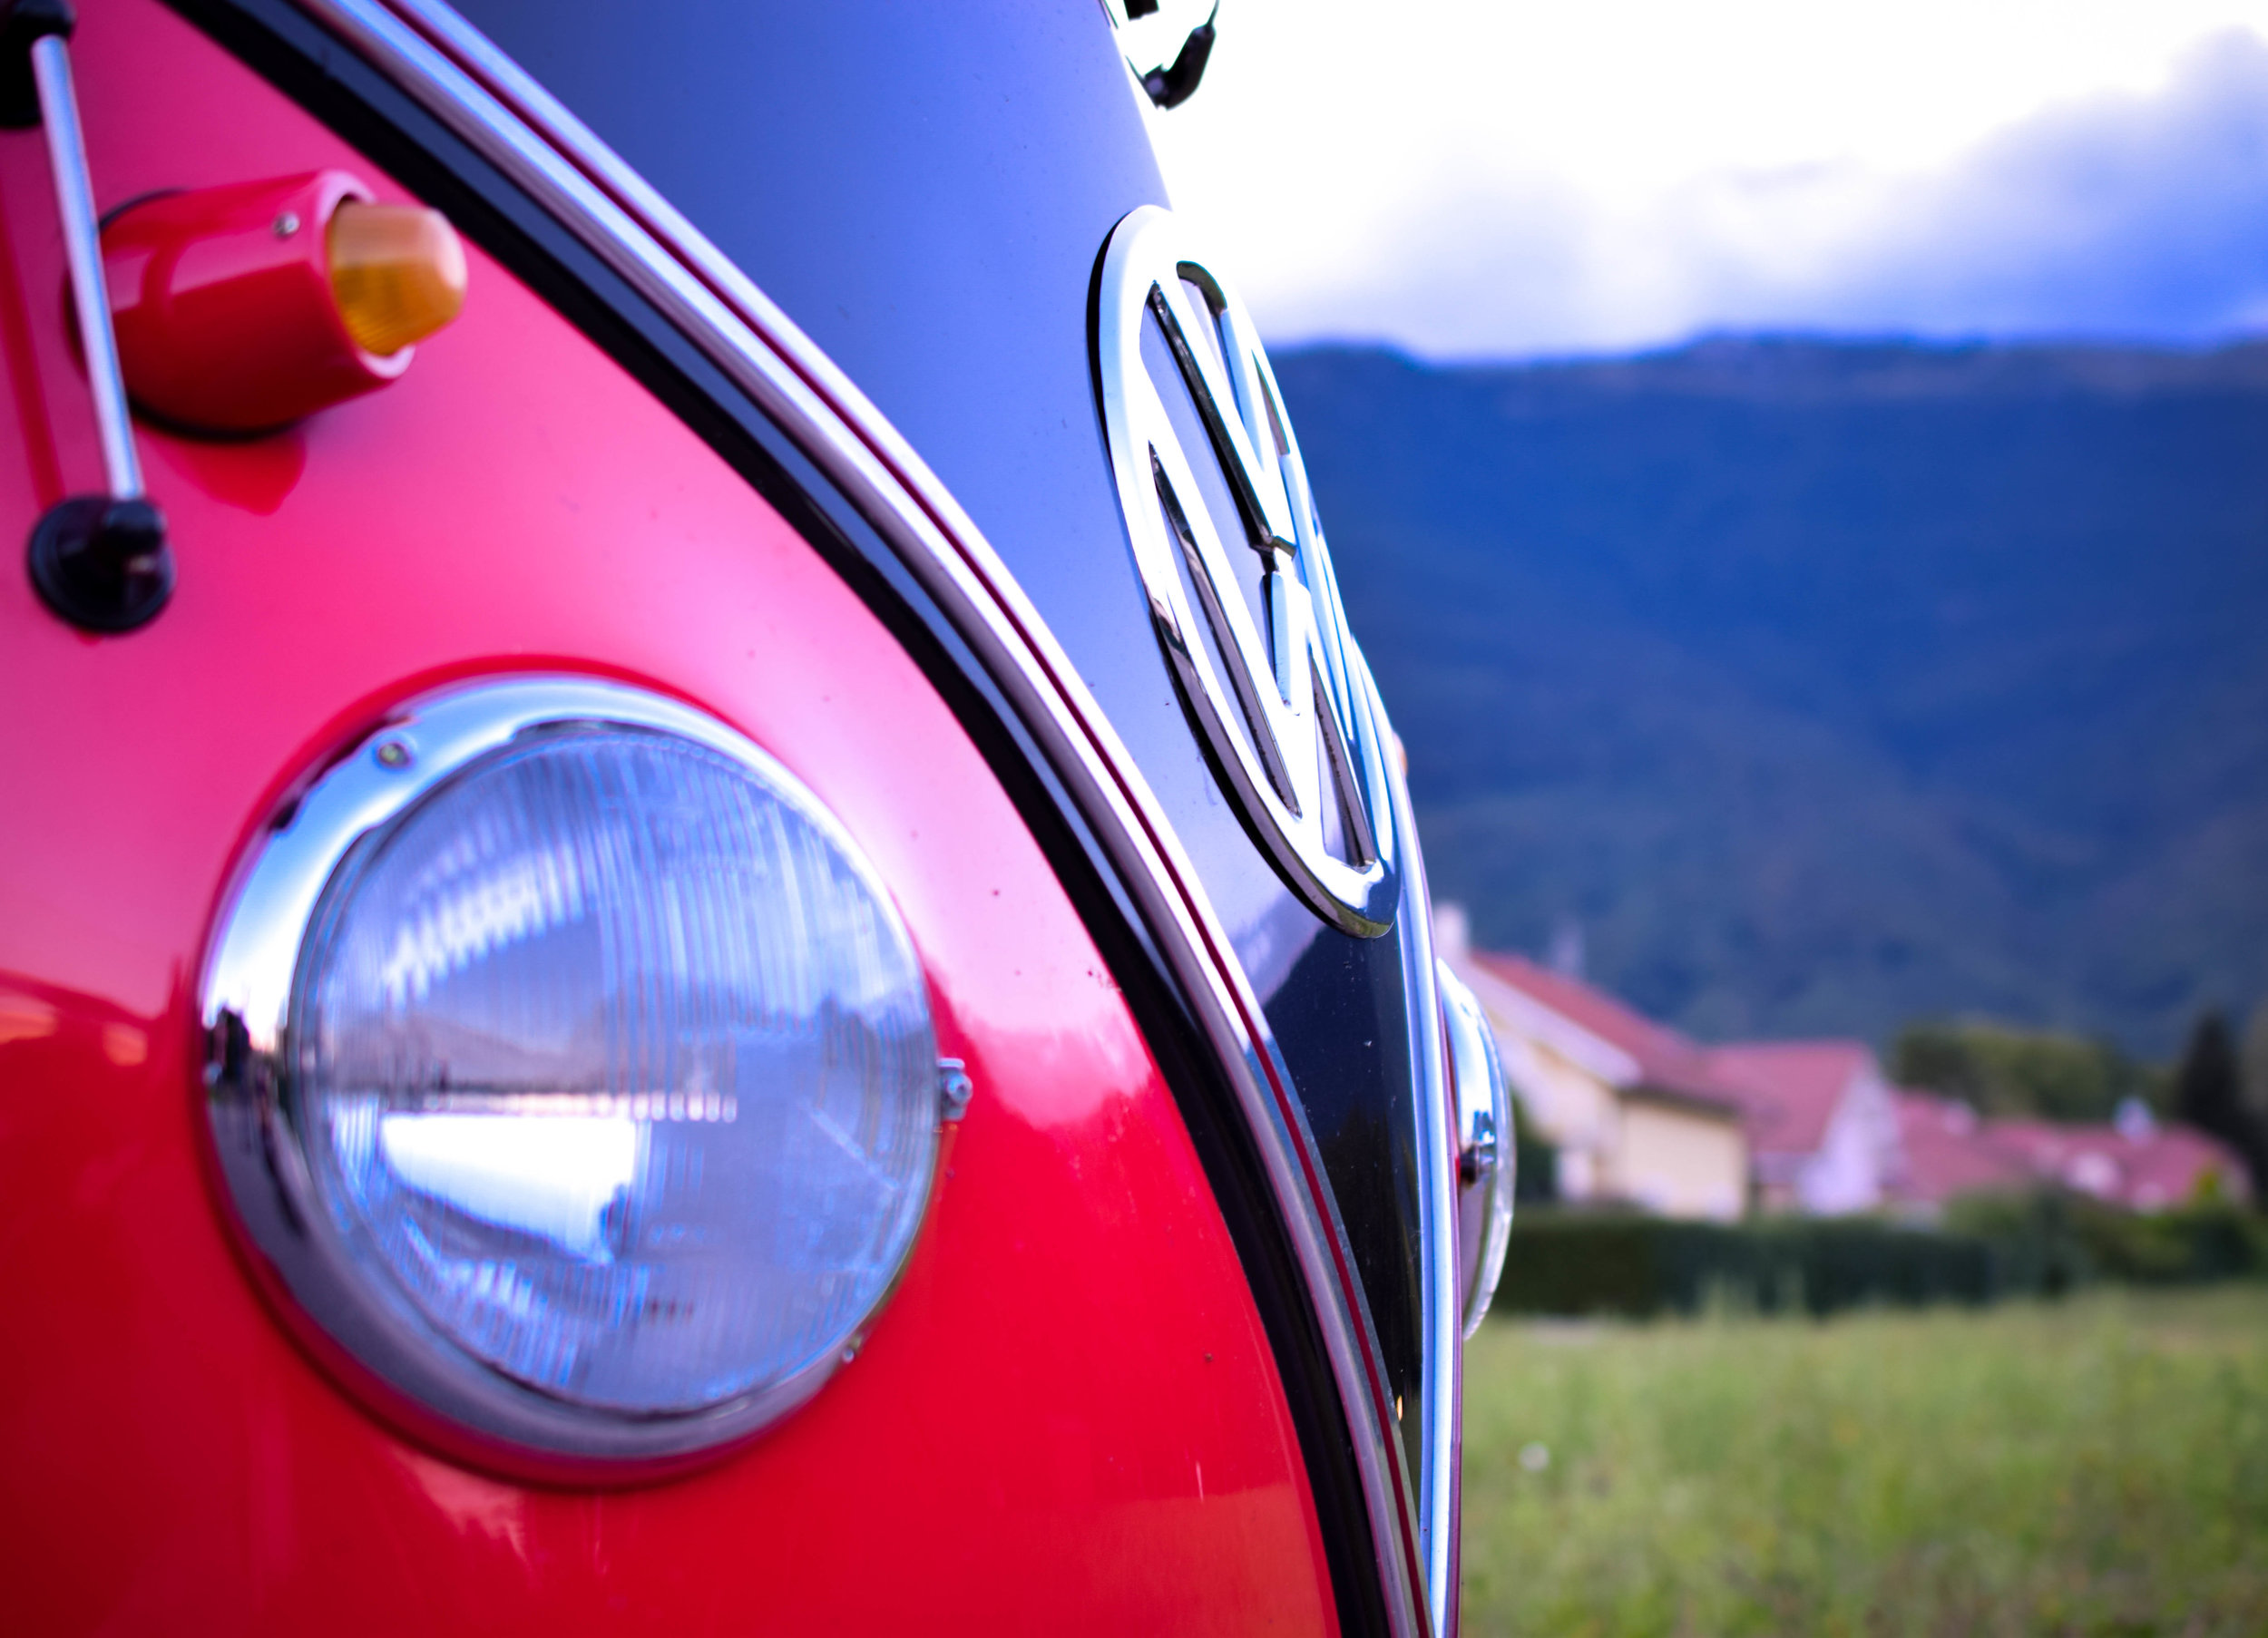 A new concept - Feel Good Vibes brings you back in time with a rental service for tourism or special events inside an old school van VW coming straight from the sixties.